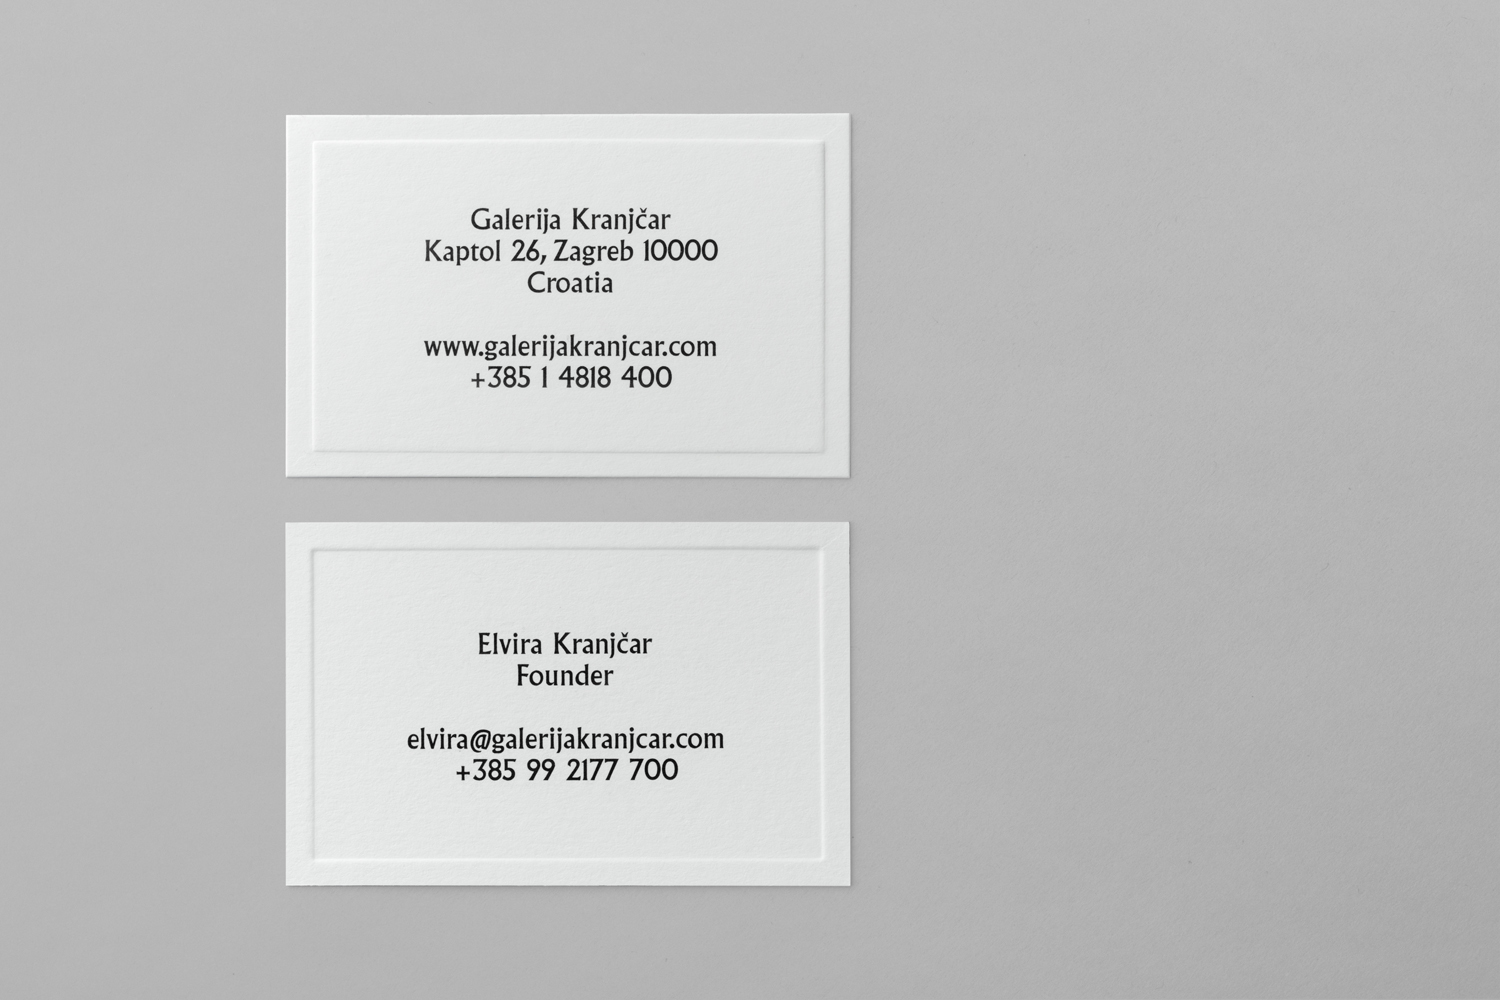 The Best Creative Business Cards 2017 – Galerija Kranjčar by Bunch, Coatia